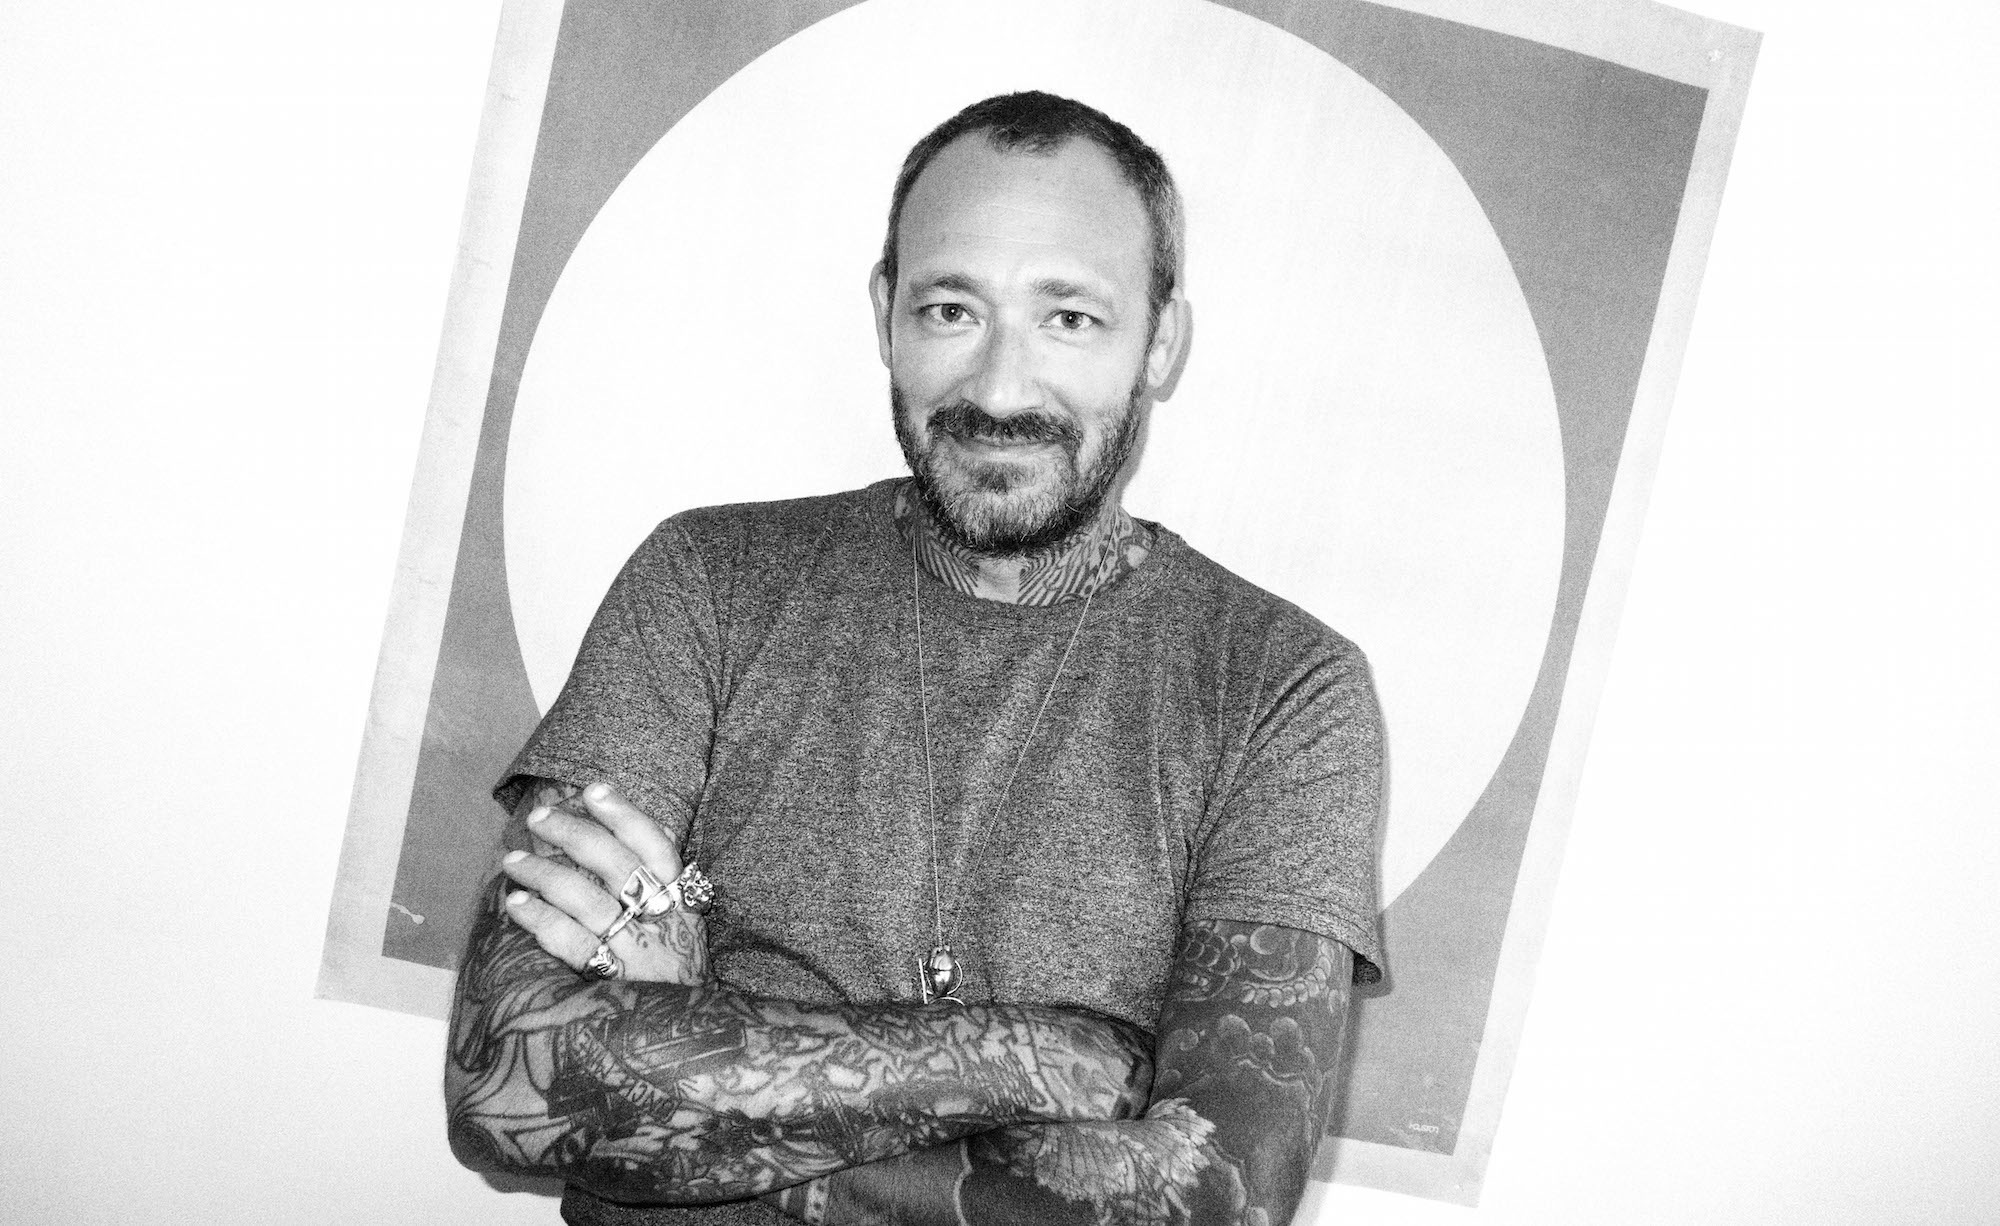 I-D MAGAZINE: JK5, the tattoo artist who seduced rei kawakubo